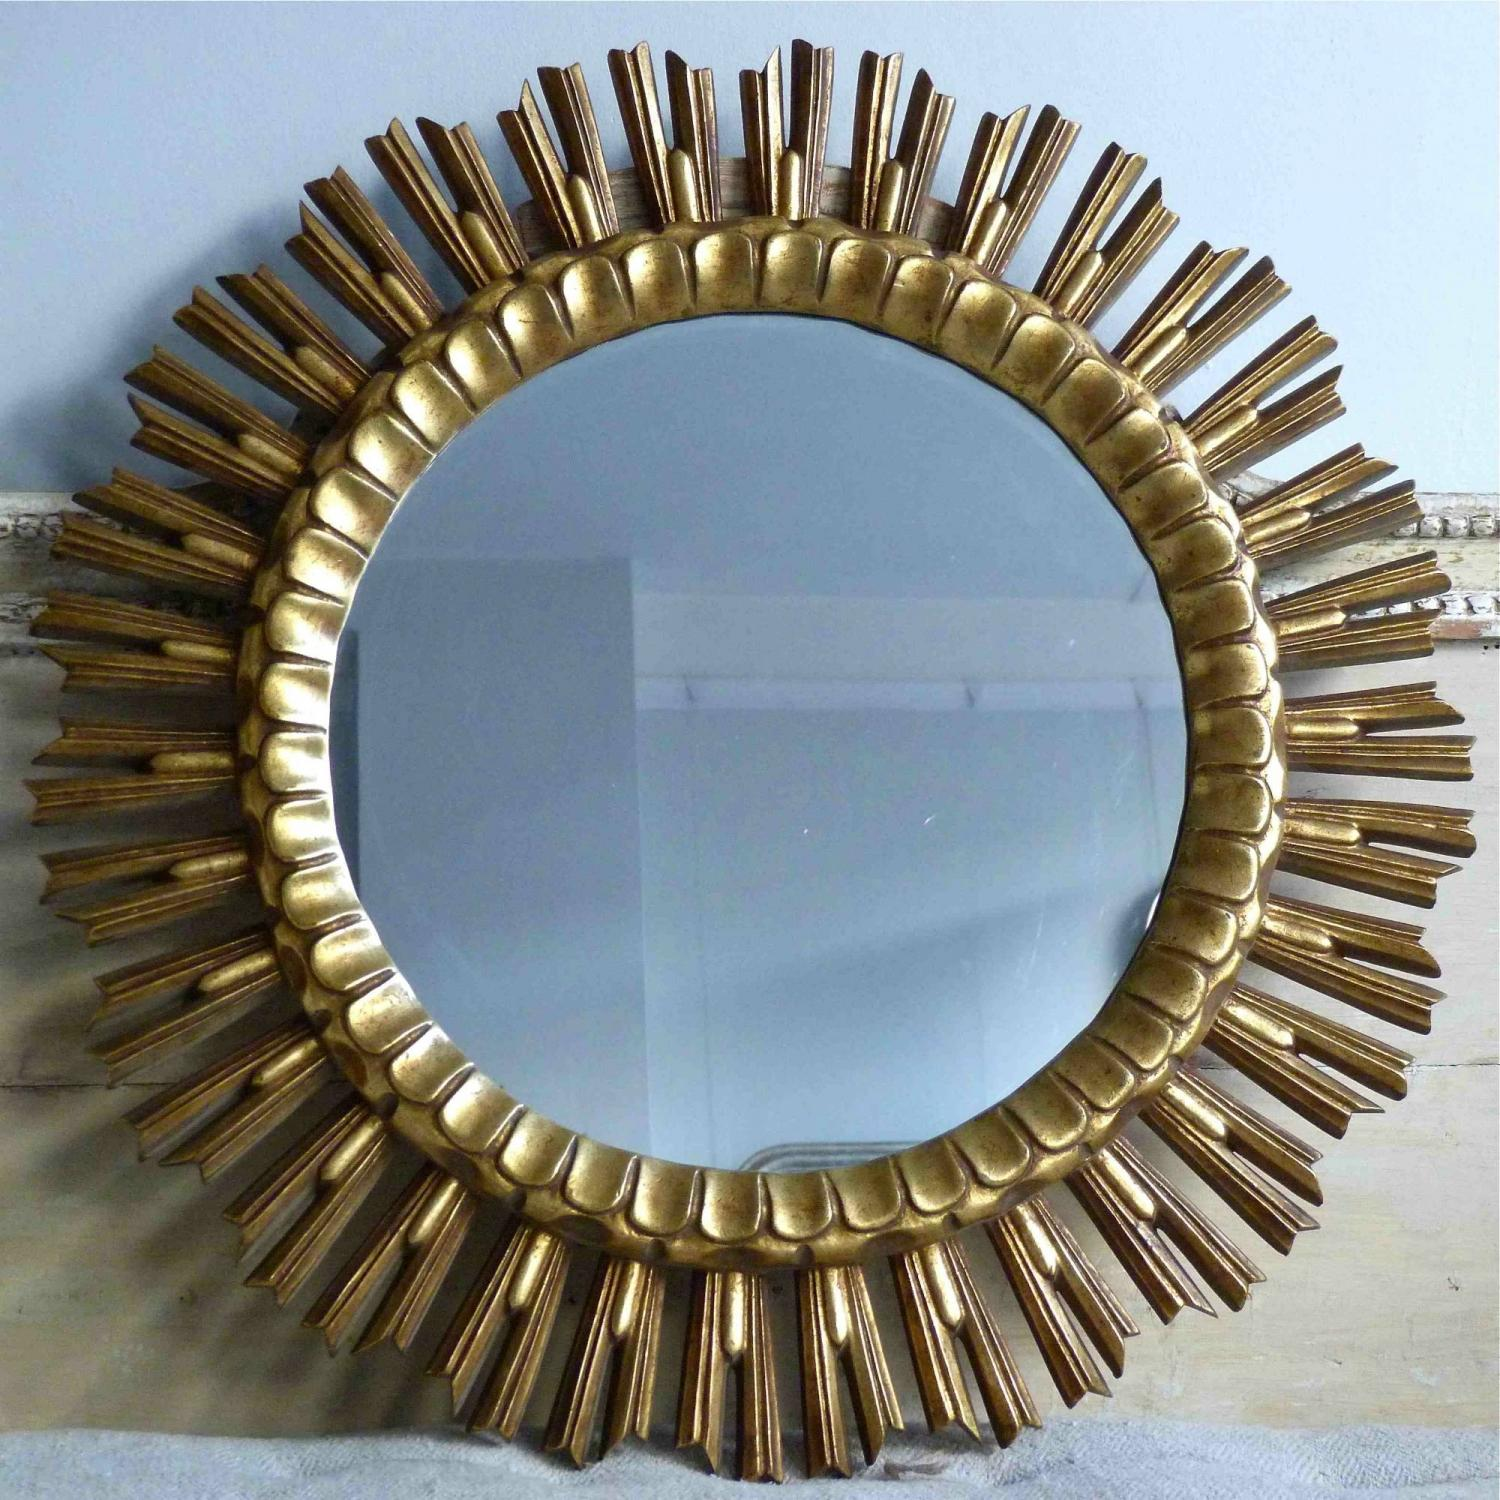 LARGE VINTAGE WOODEN SUNBURST MIRROR